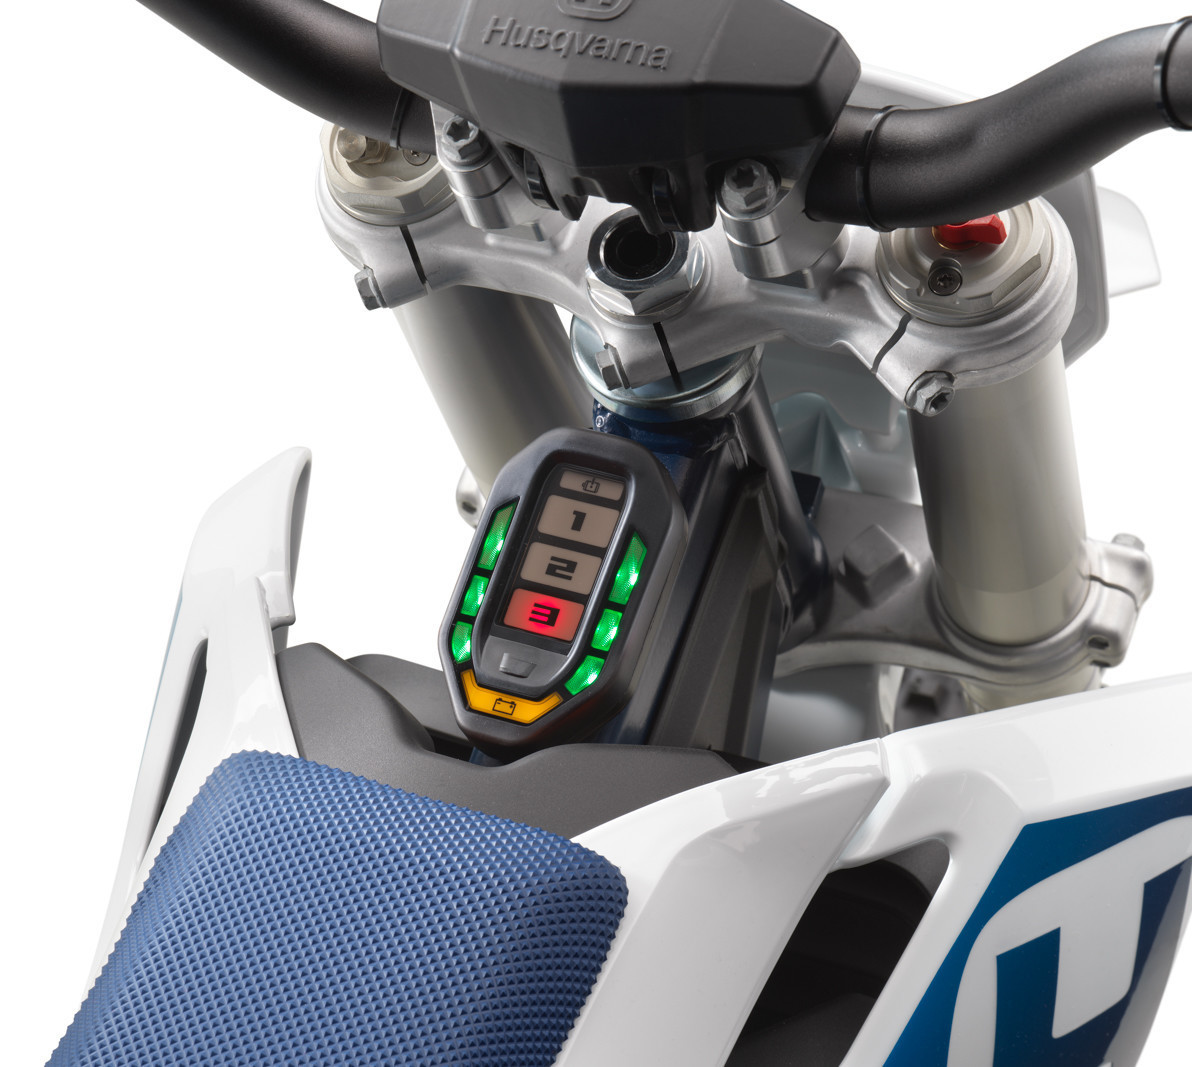 We like that parents can select the power setting that's appropriate for their rider.